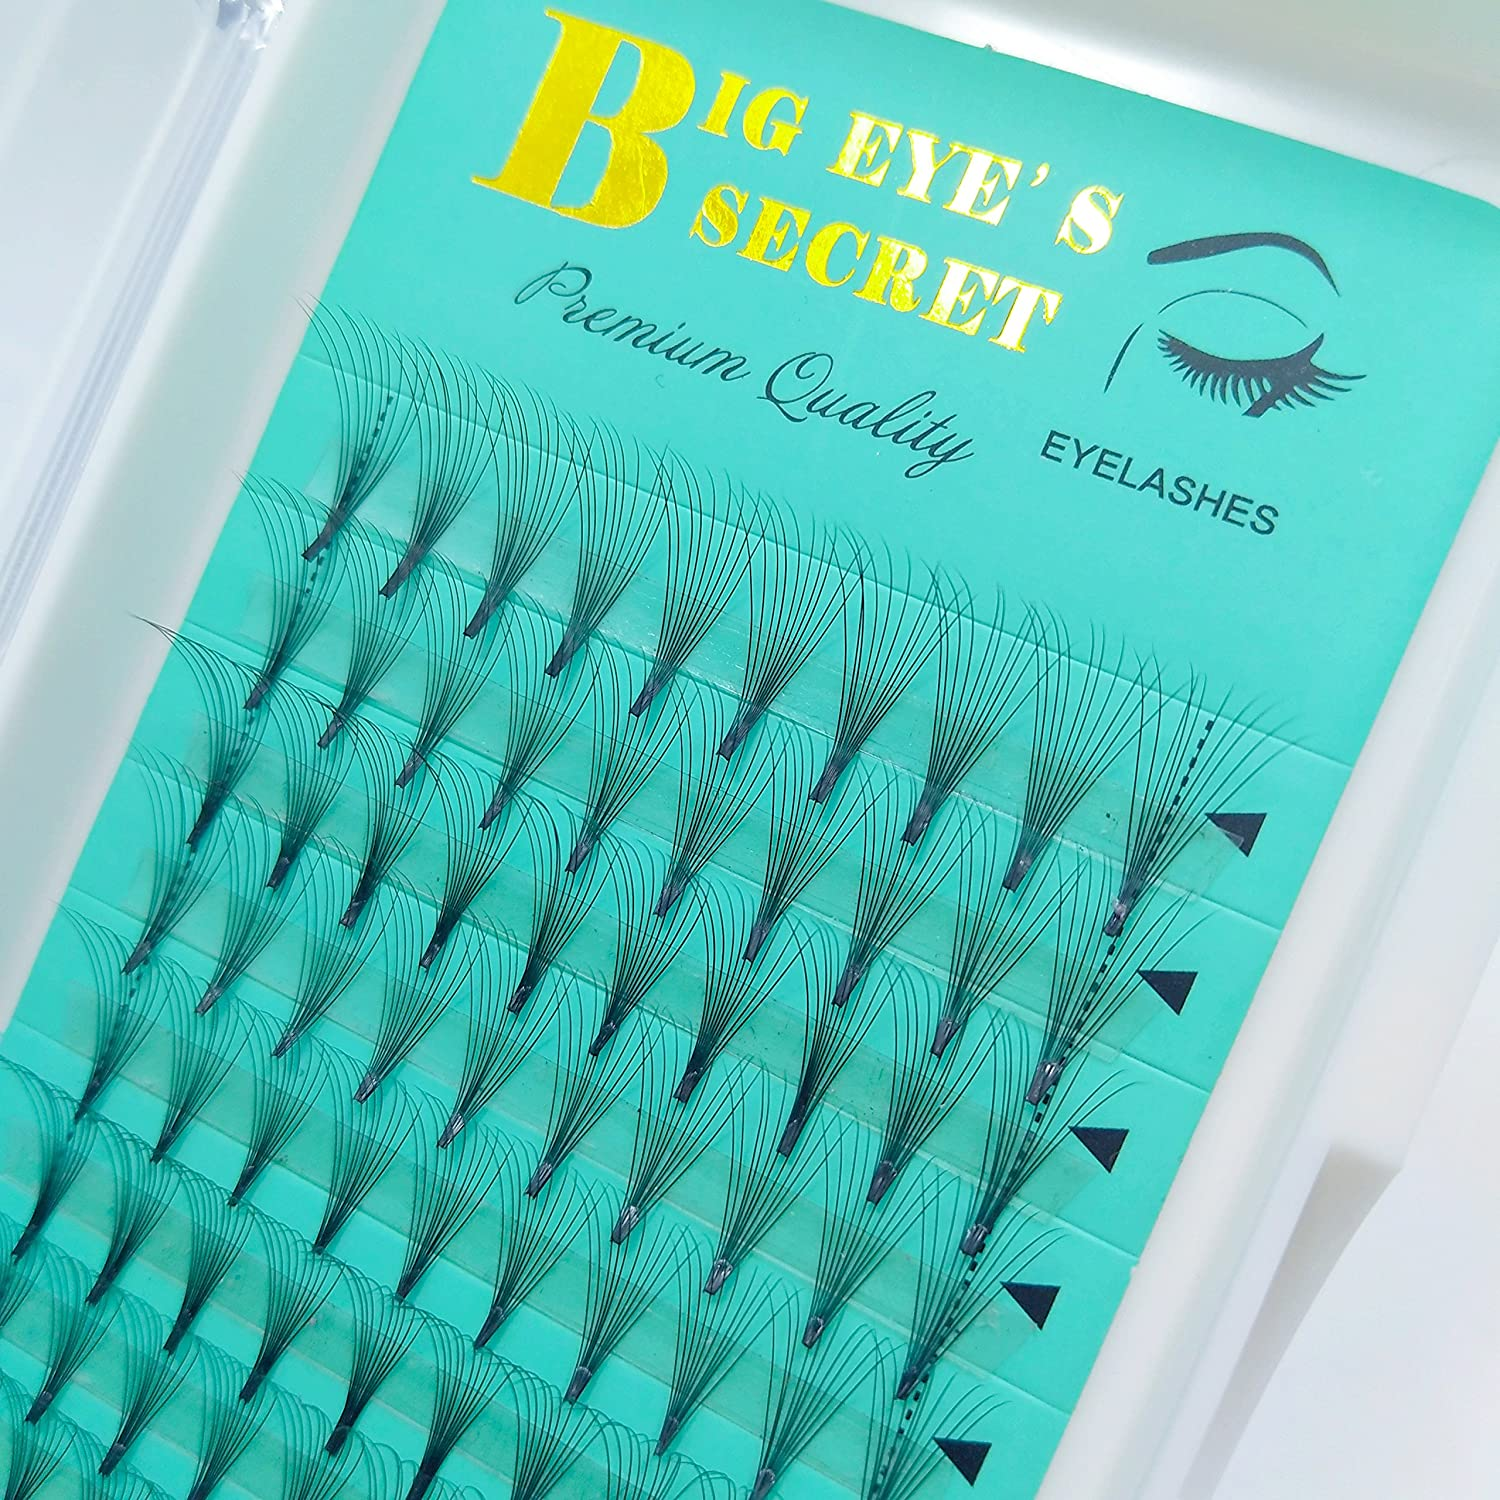 BIG EYE' S SECRET 10D Middle 0.07 Thickness C Curl Volume Eyelashes Black Premade Fans Extension Lashes Lash Extensions Premium Quality Natural Eyelashes Volume Lashes (10D 0.07C 14mm) Ltd.